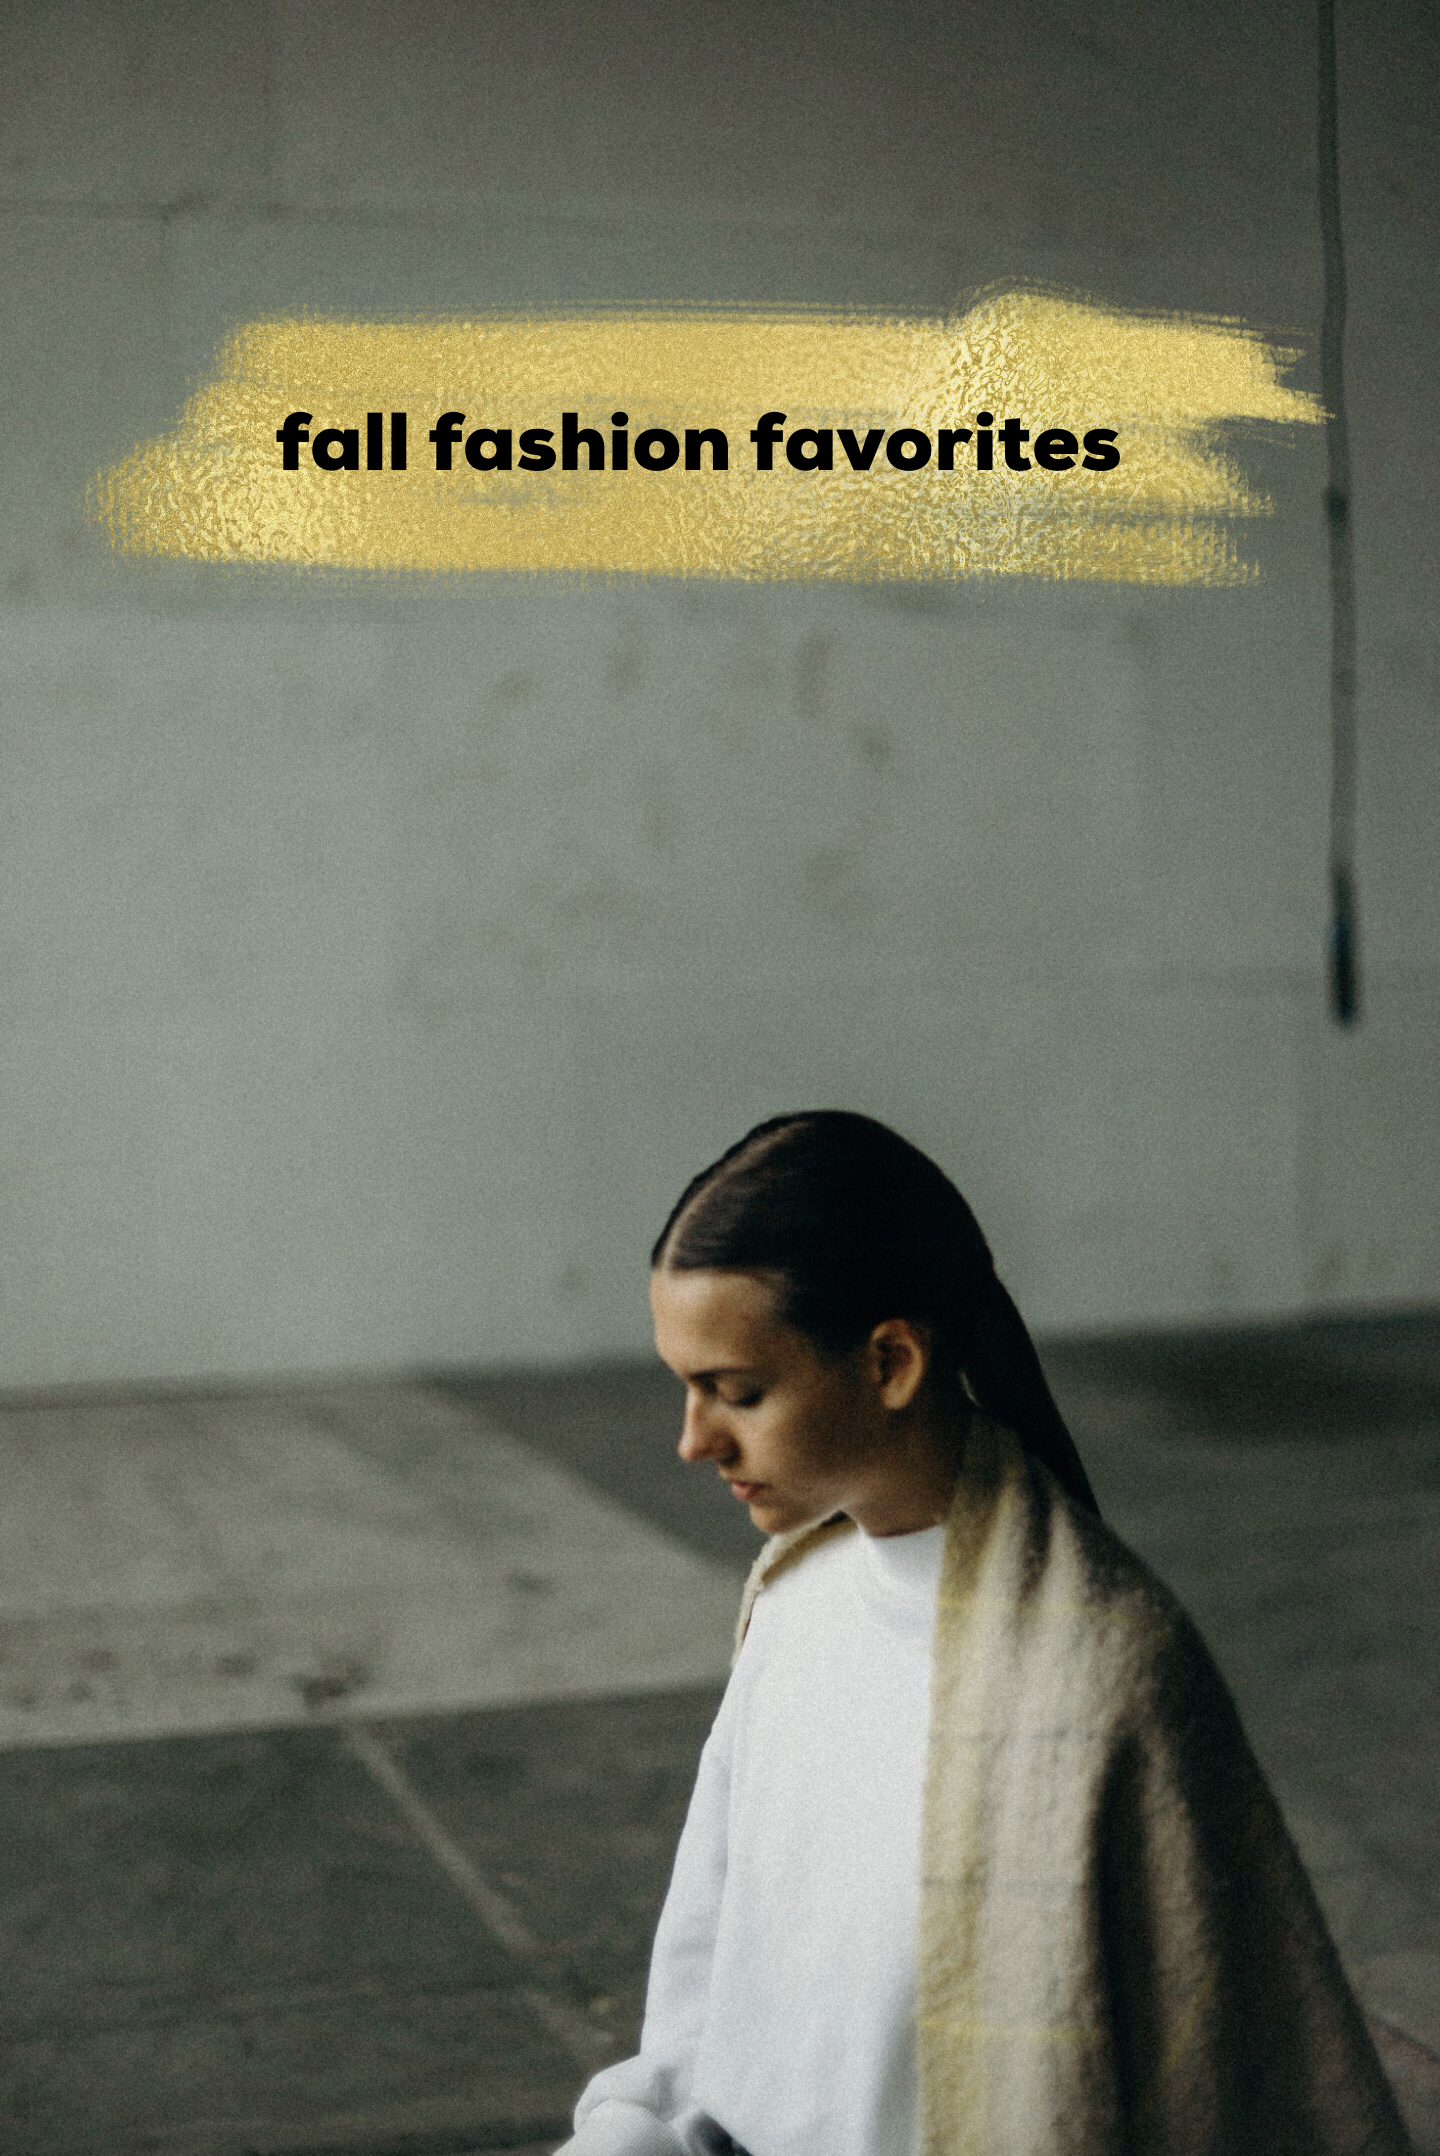 fall fashion favorites 2019